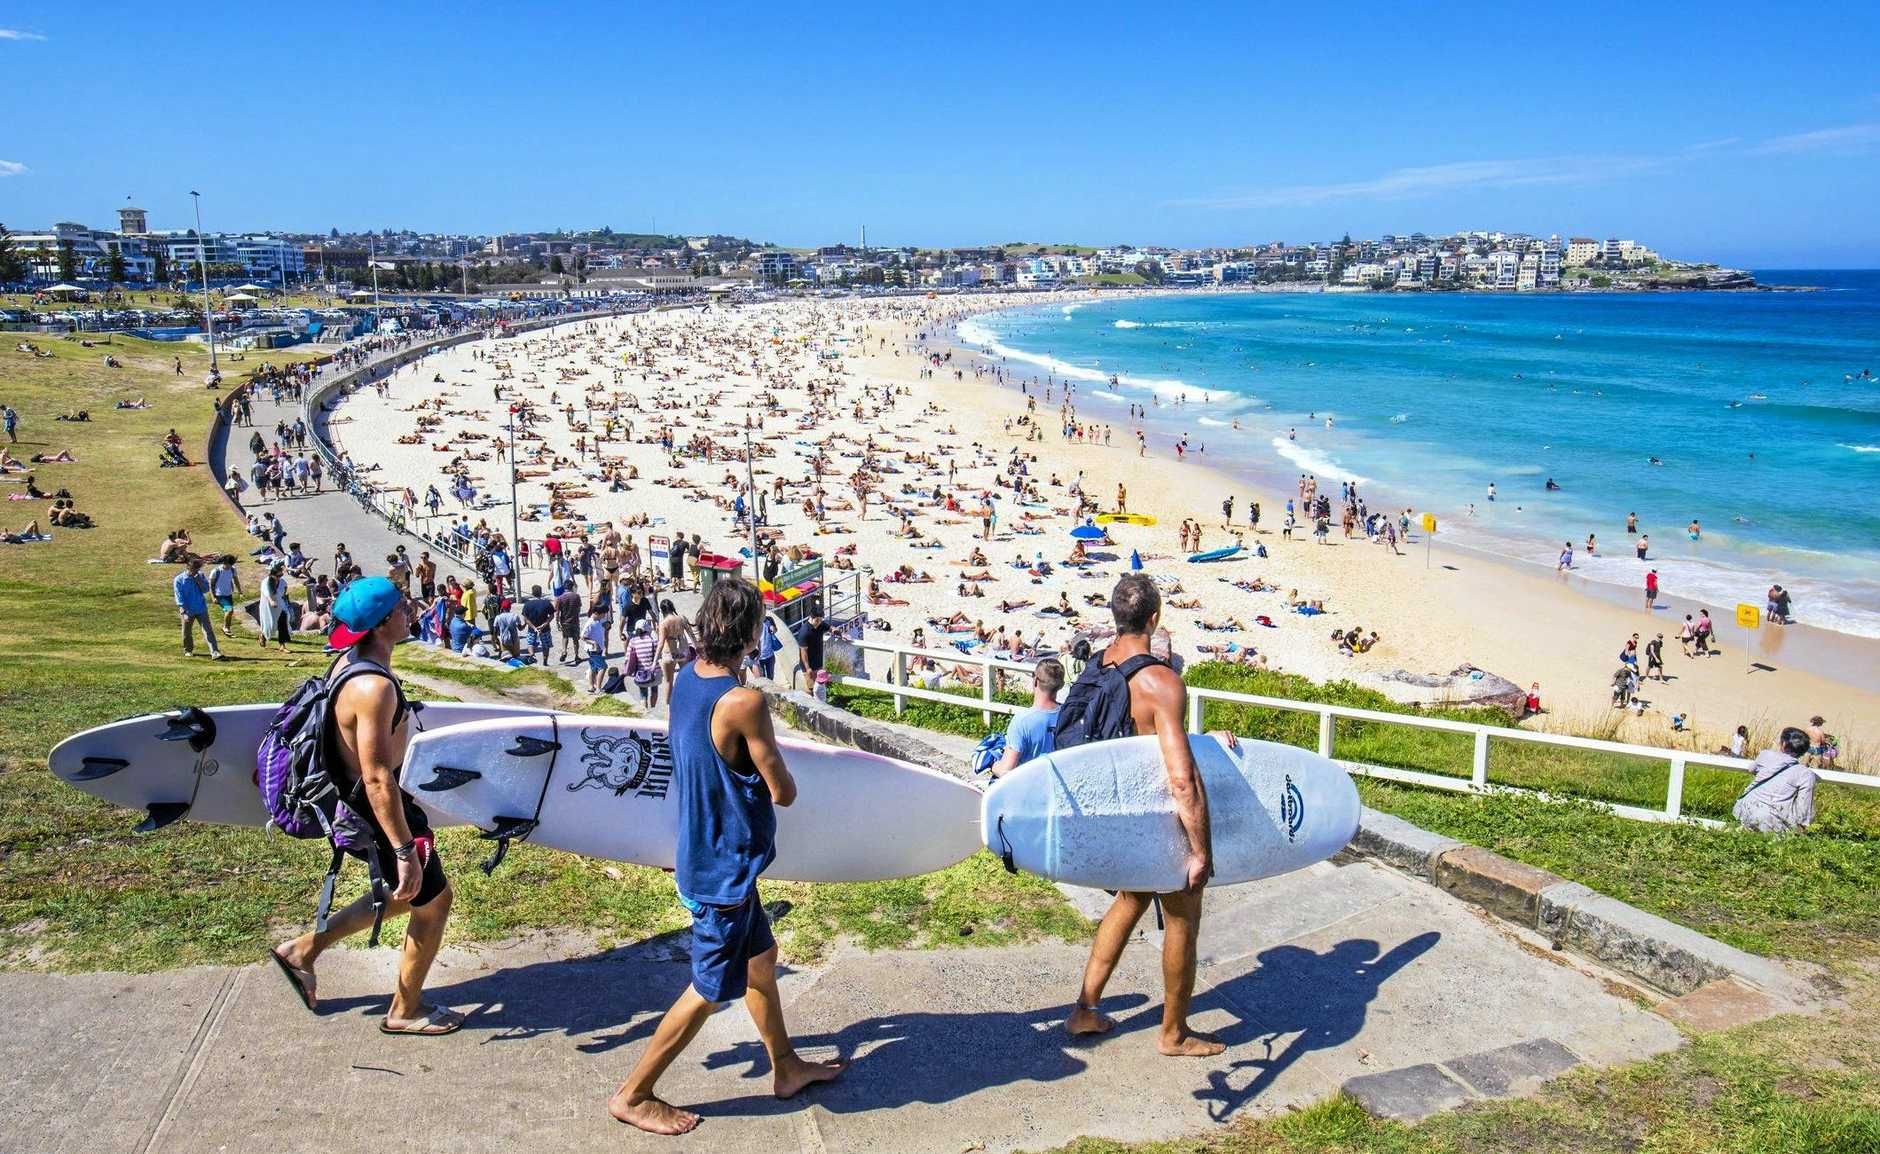 BONDI BEACH: The top of the list for the world's best city beaches.